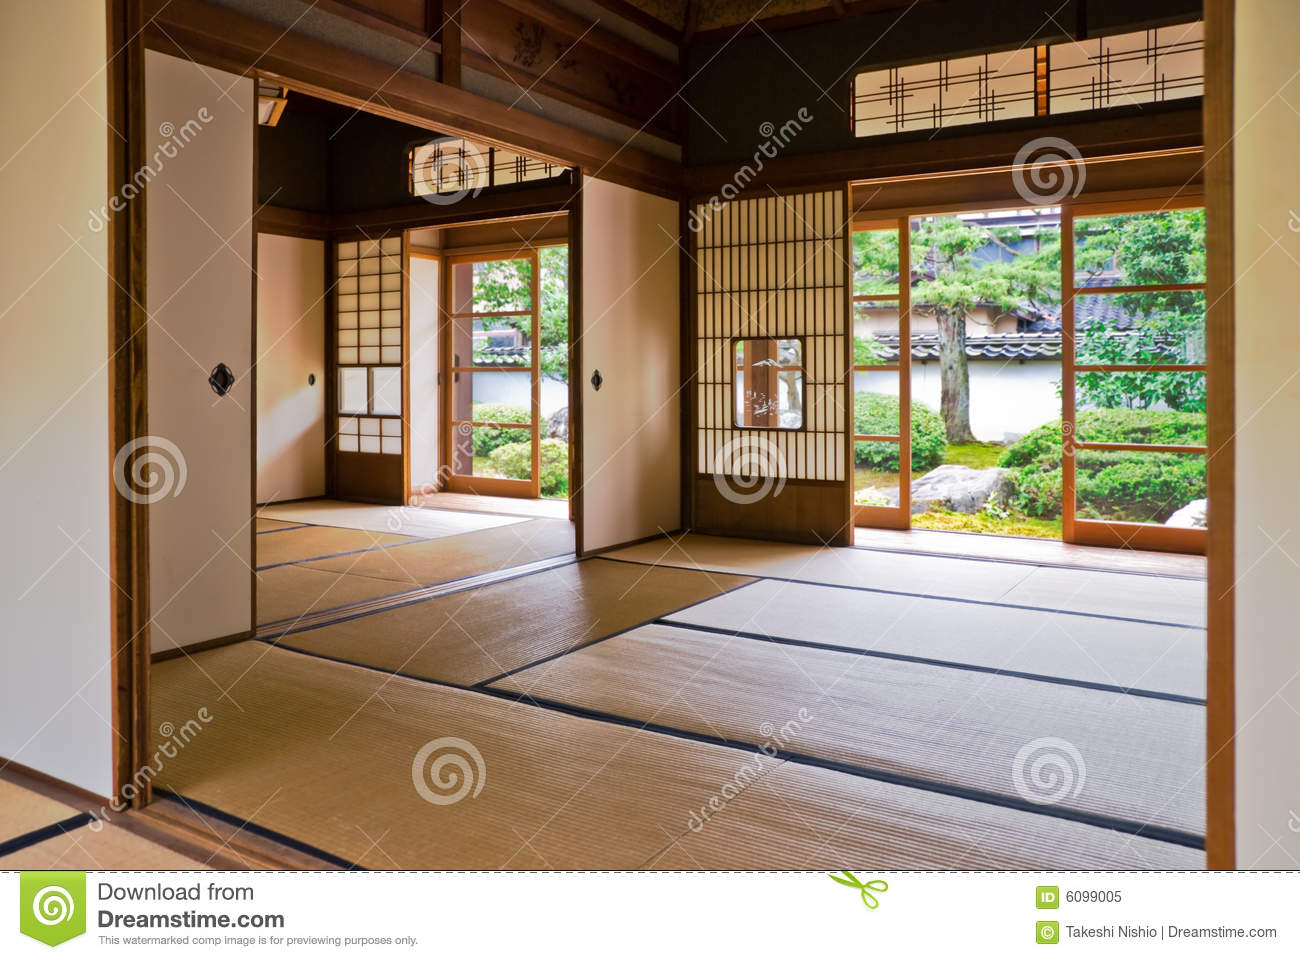 Tatami And Shoji The Old Japanese Room Royalty Free Stock